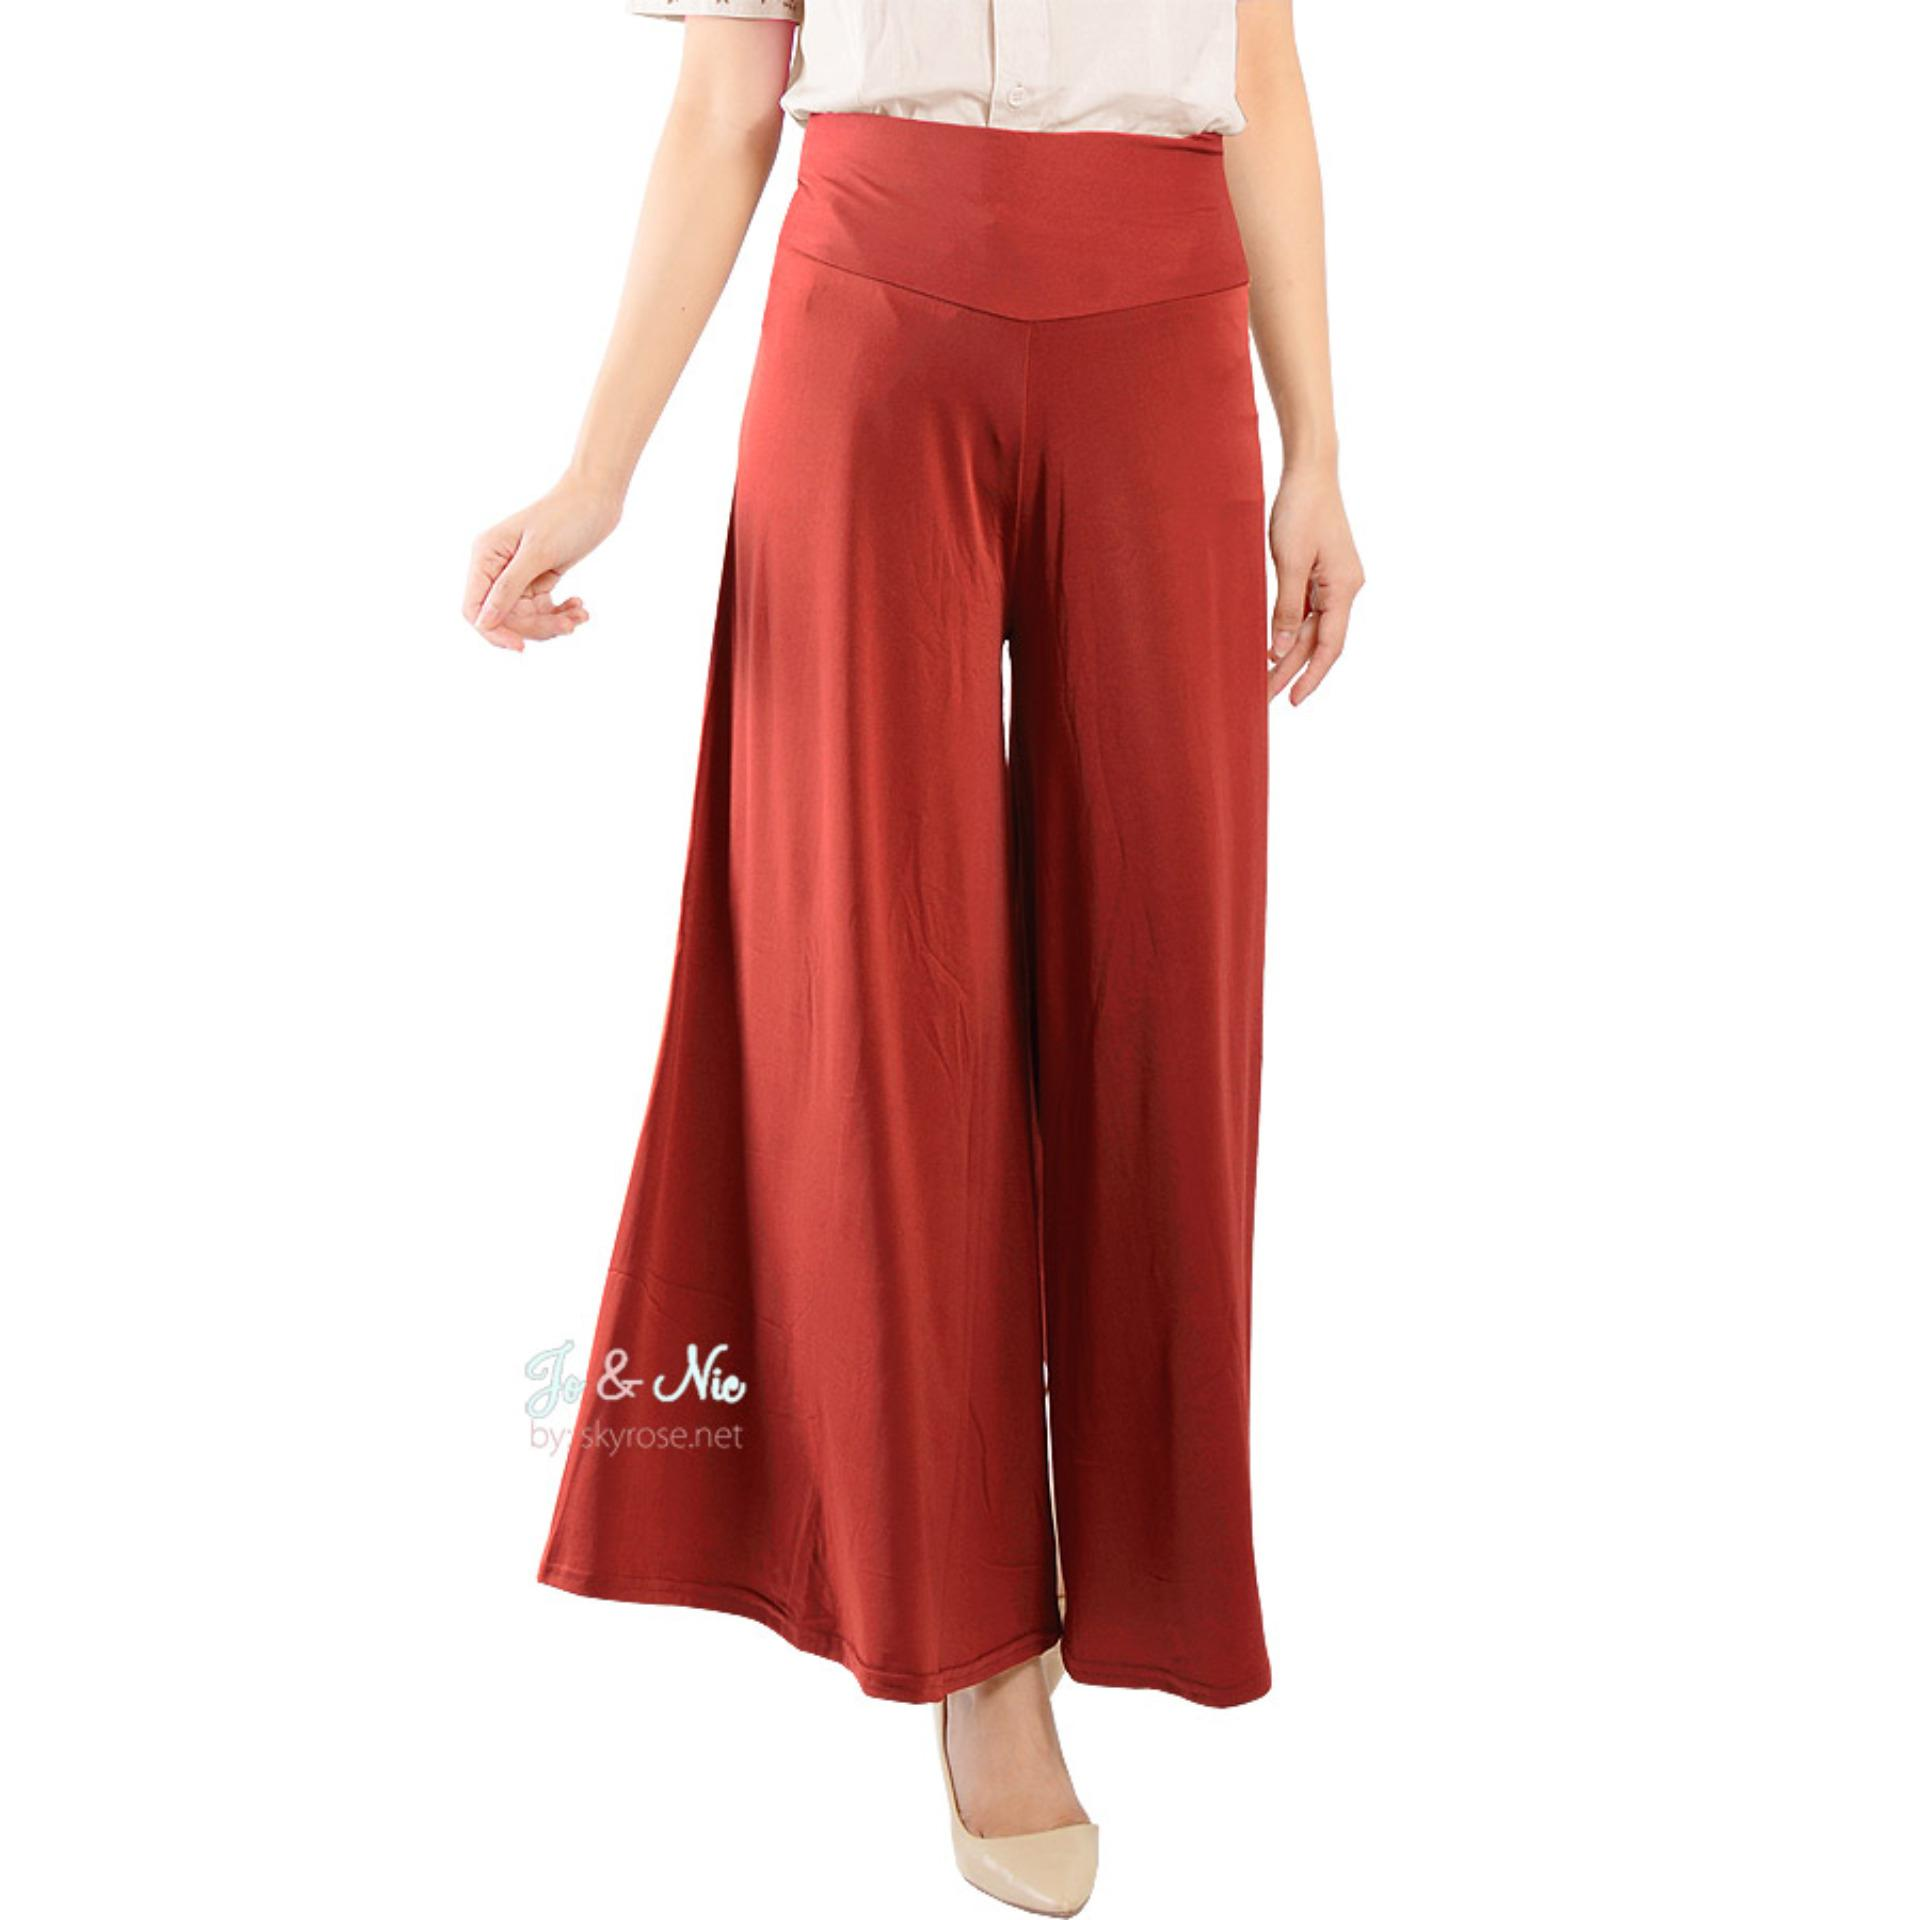 Jo Nic Wide Bottom Pants Kulot Wanita Fit To Big Size Brick Jo Nic Diskon 30